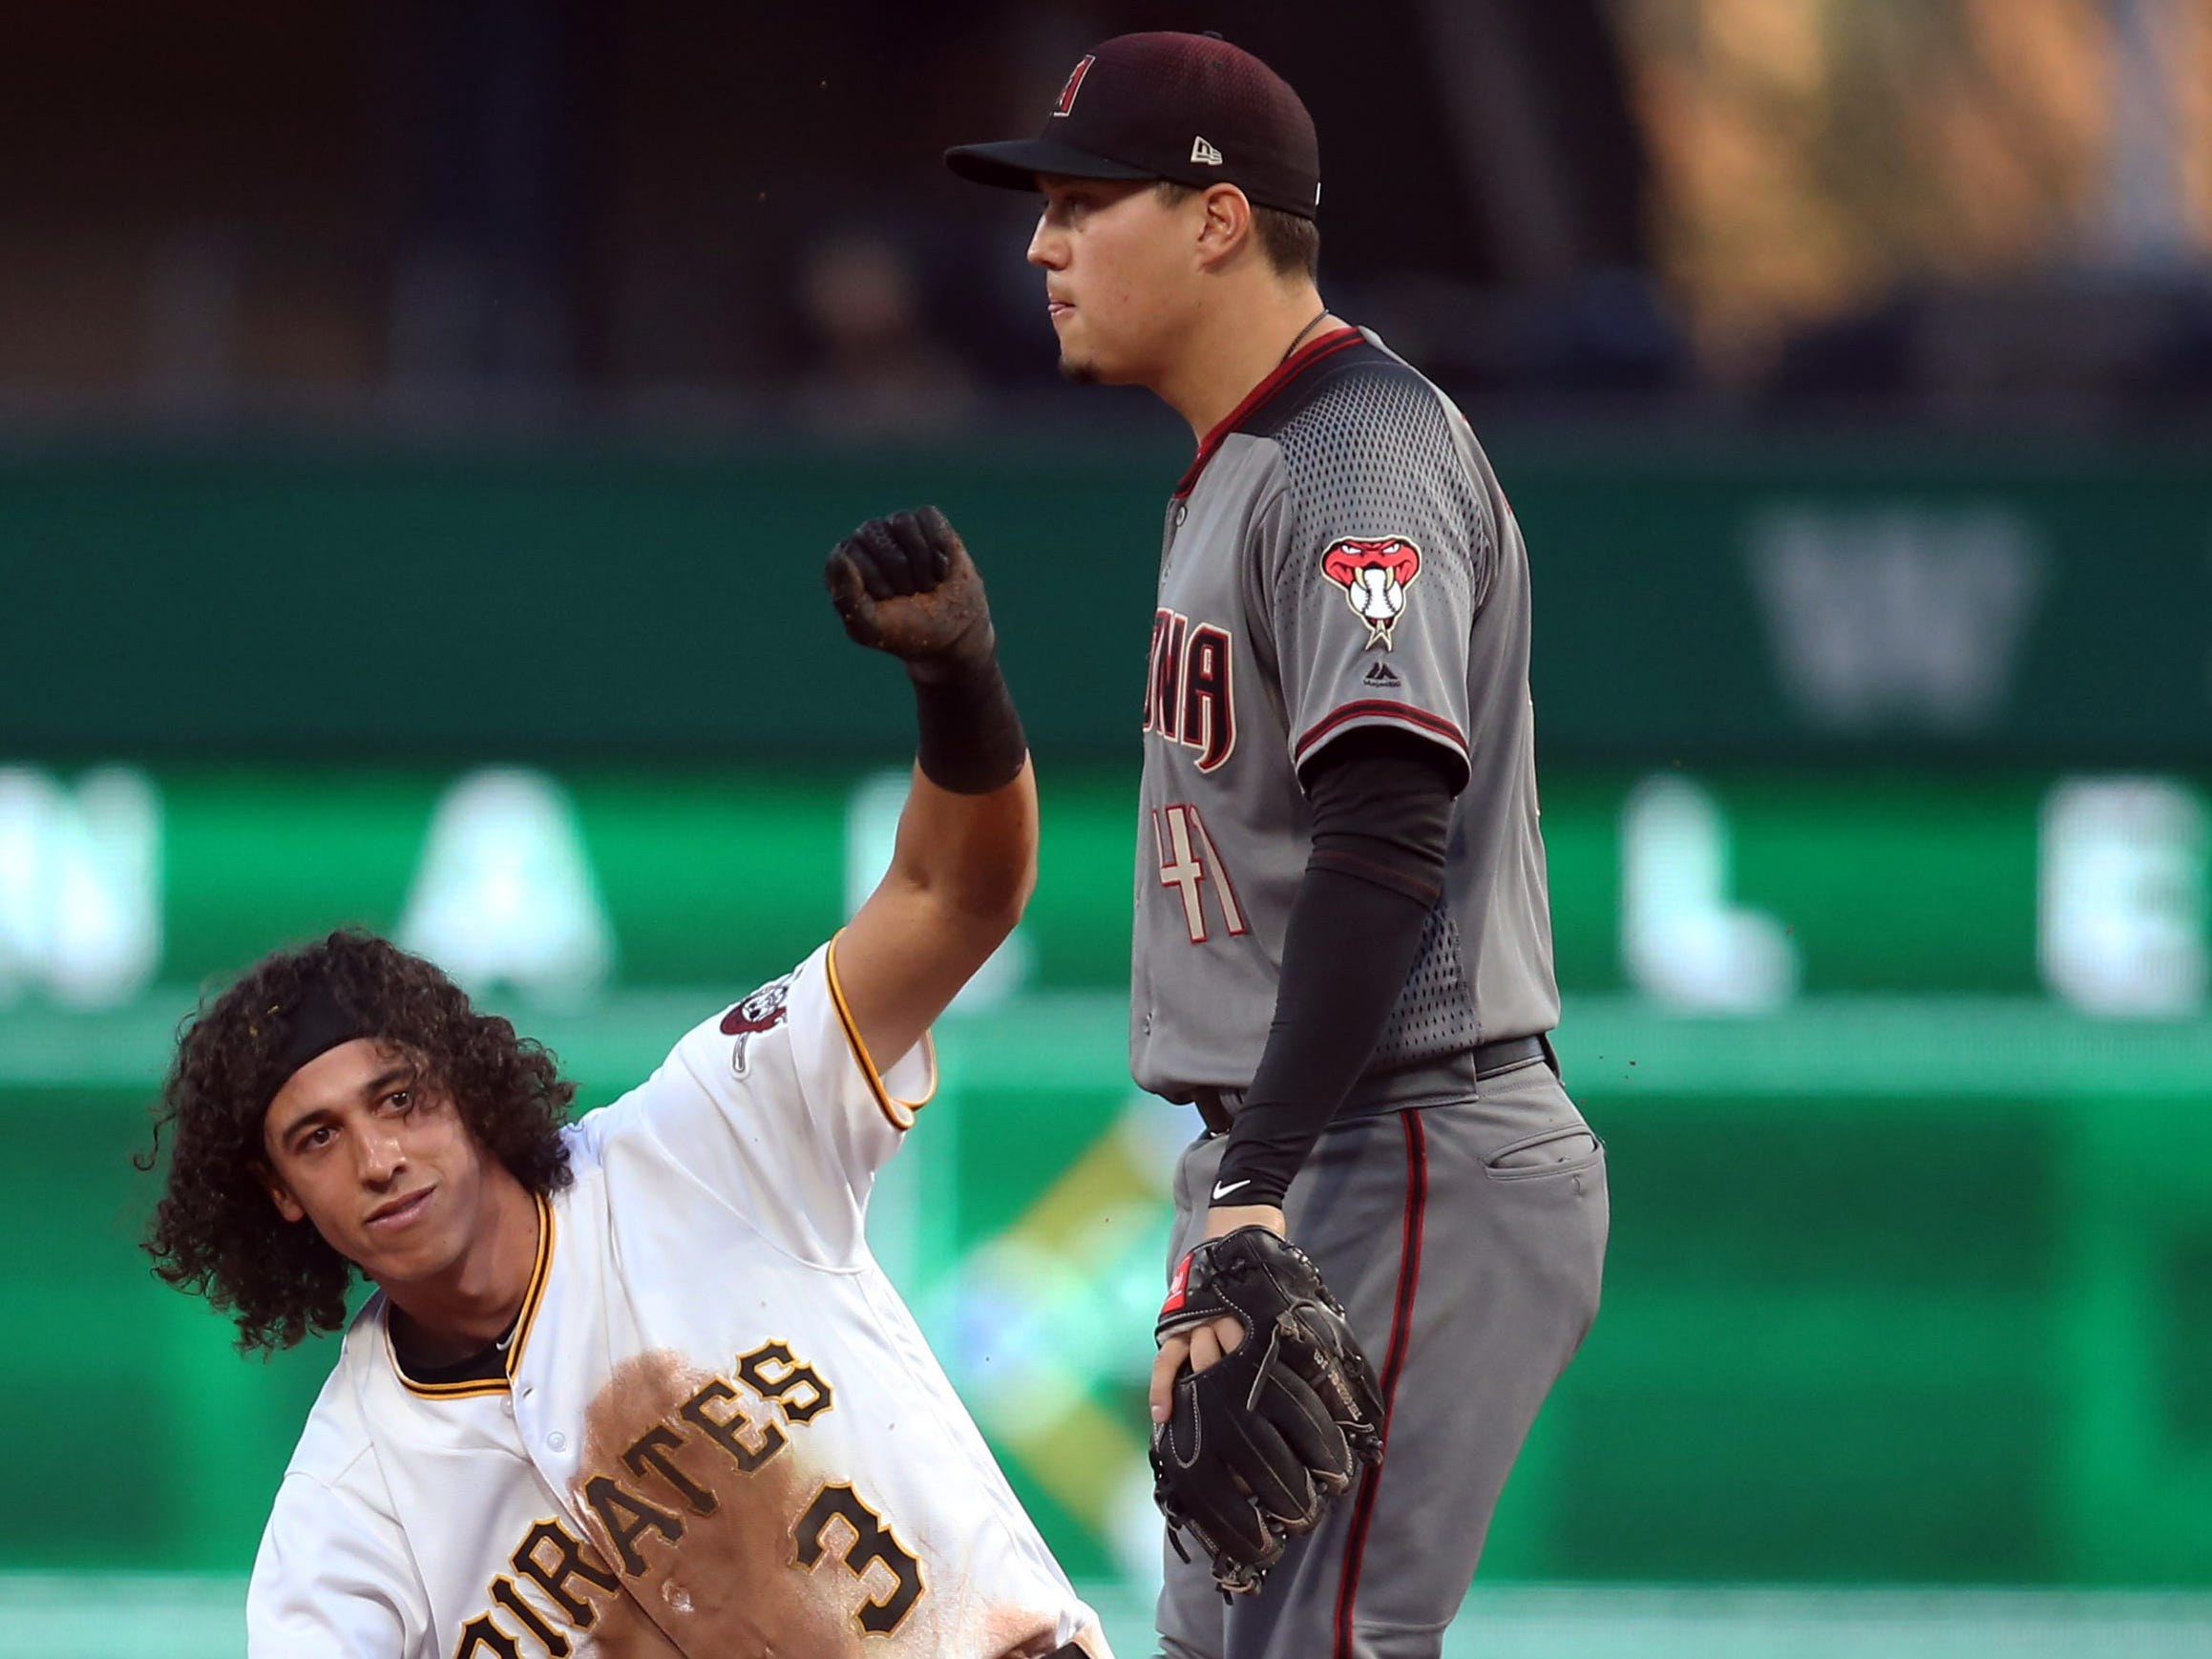 Apr 22, 2019; Pittsburgh, PA, USA;  Pittsburgh Pirates shortstop Cole Tucker (3) reacts at second base after hitting a double against the Arizona Diamondbacks during the second inning at PNC Park.